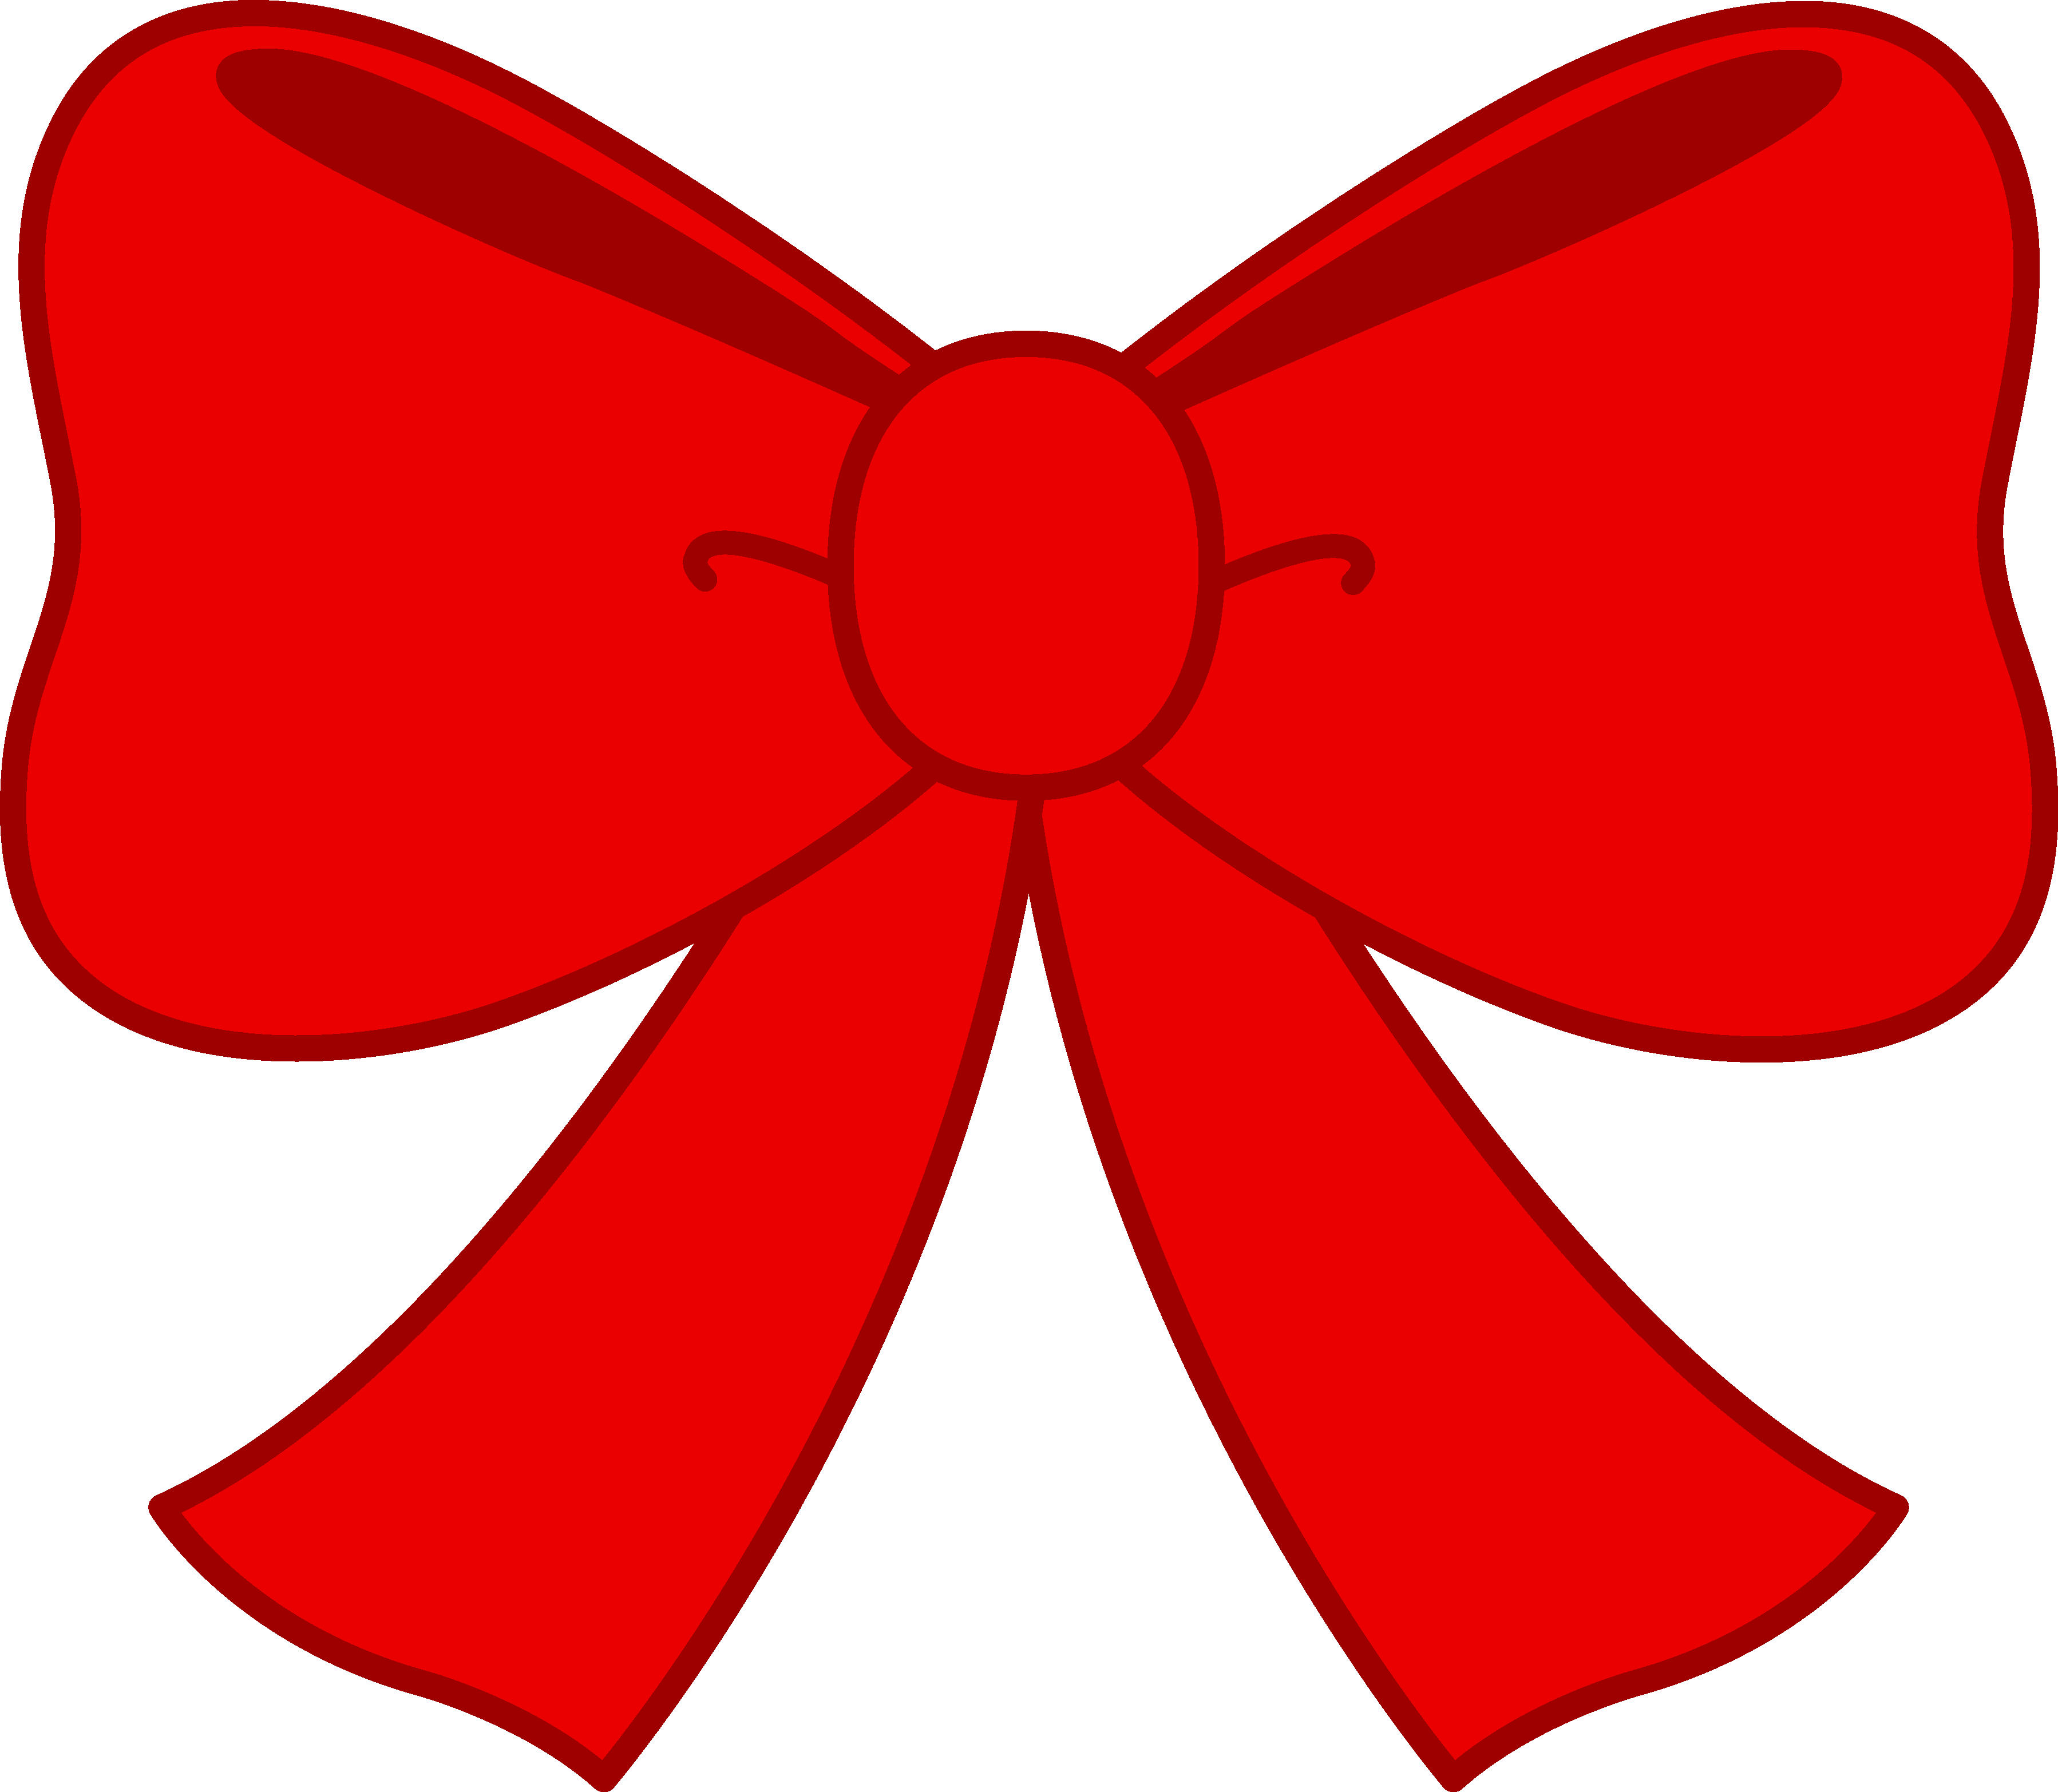 Cute Red Bow Clipart - Free Clip Art